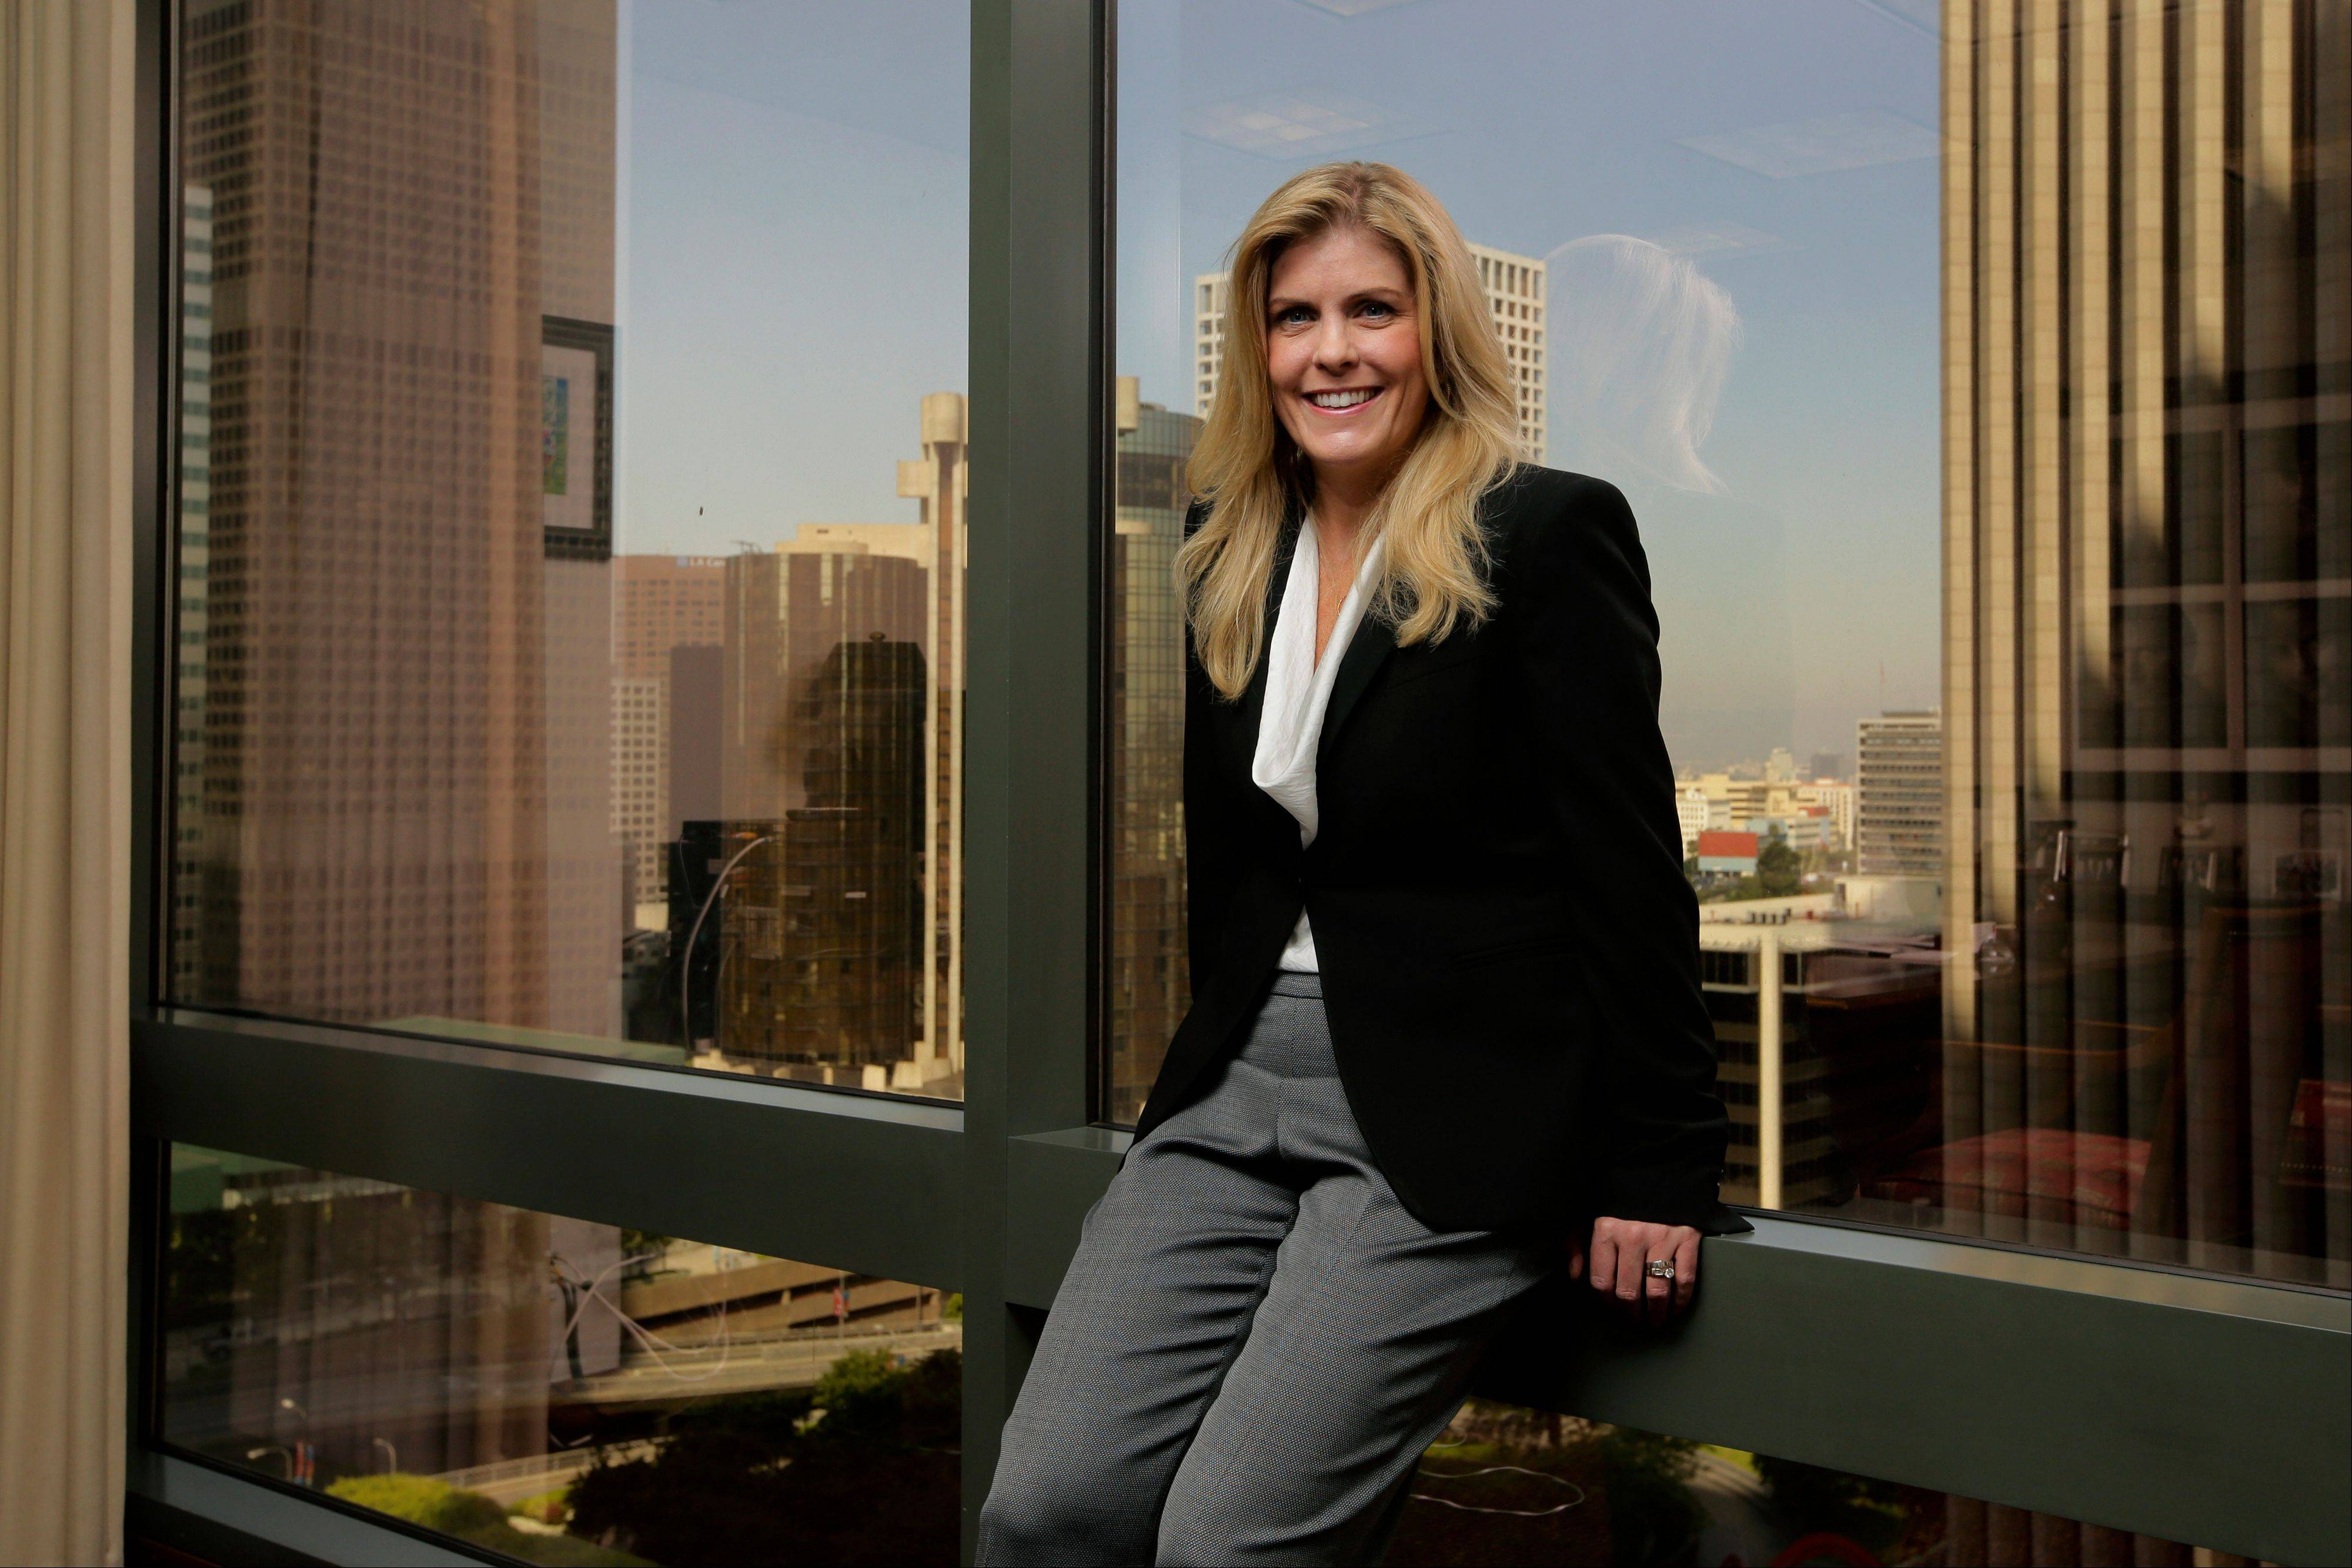 Lisa Stevens, a regional banking executive of Wells Fargo, poses for a photo in her office in Los Angeles. Wells Fargo is one of the country's biggest lenders to small business.